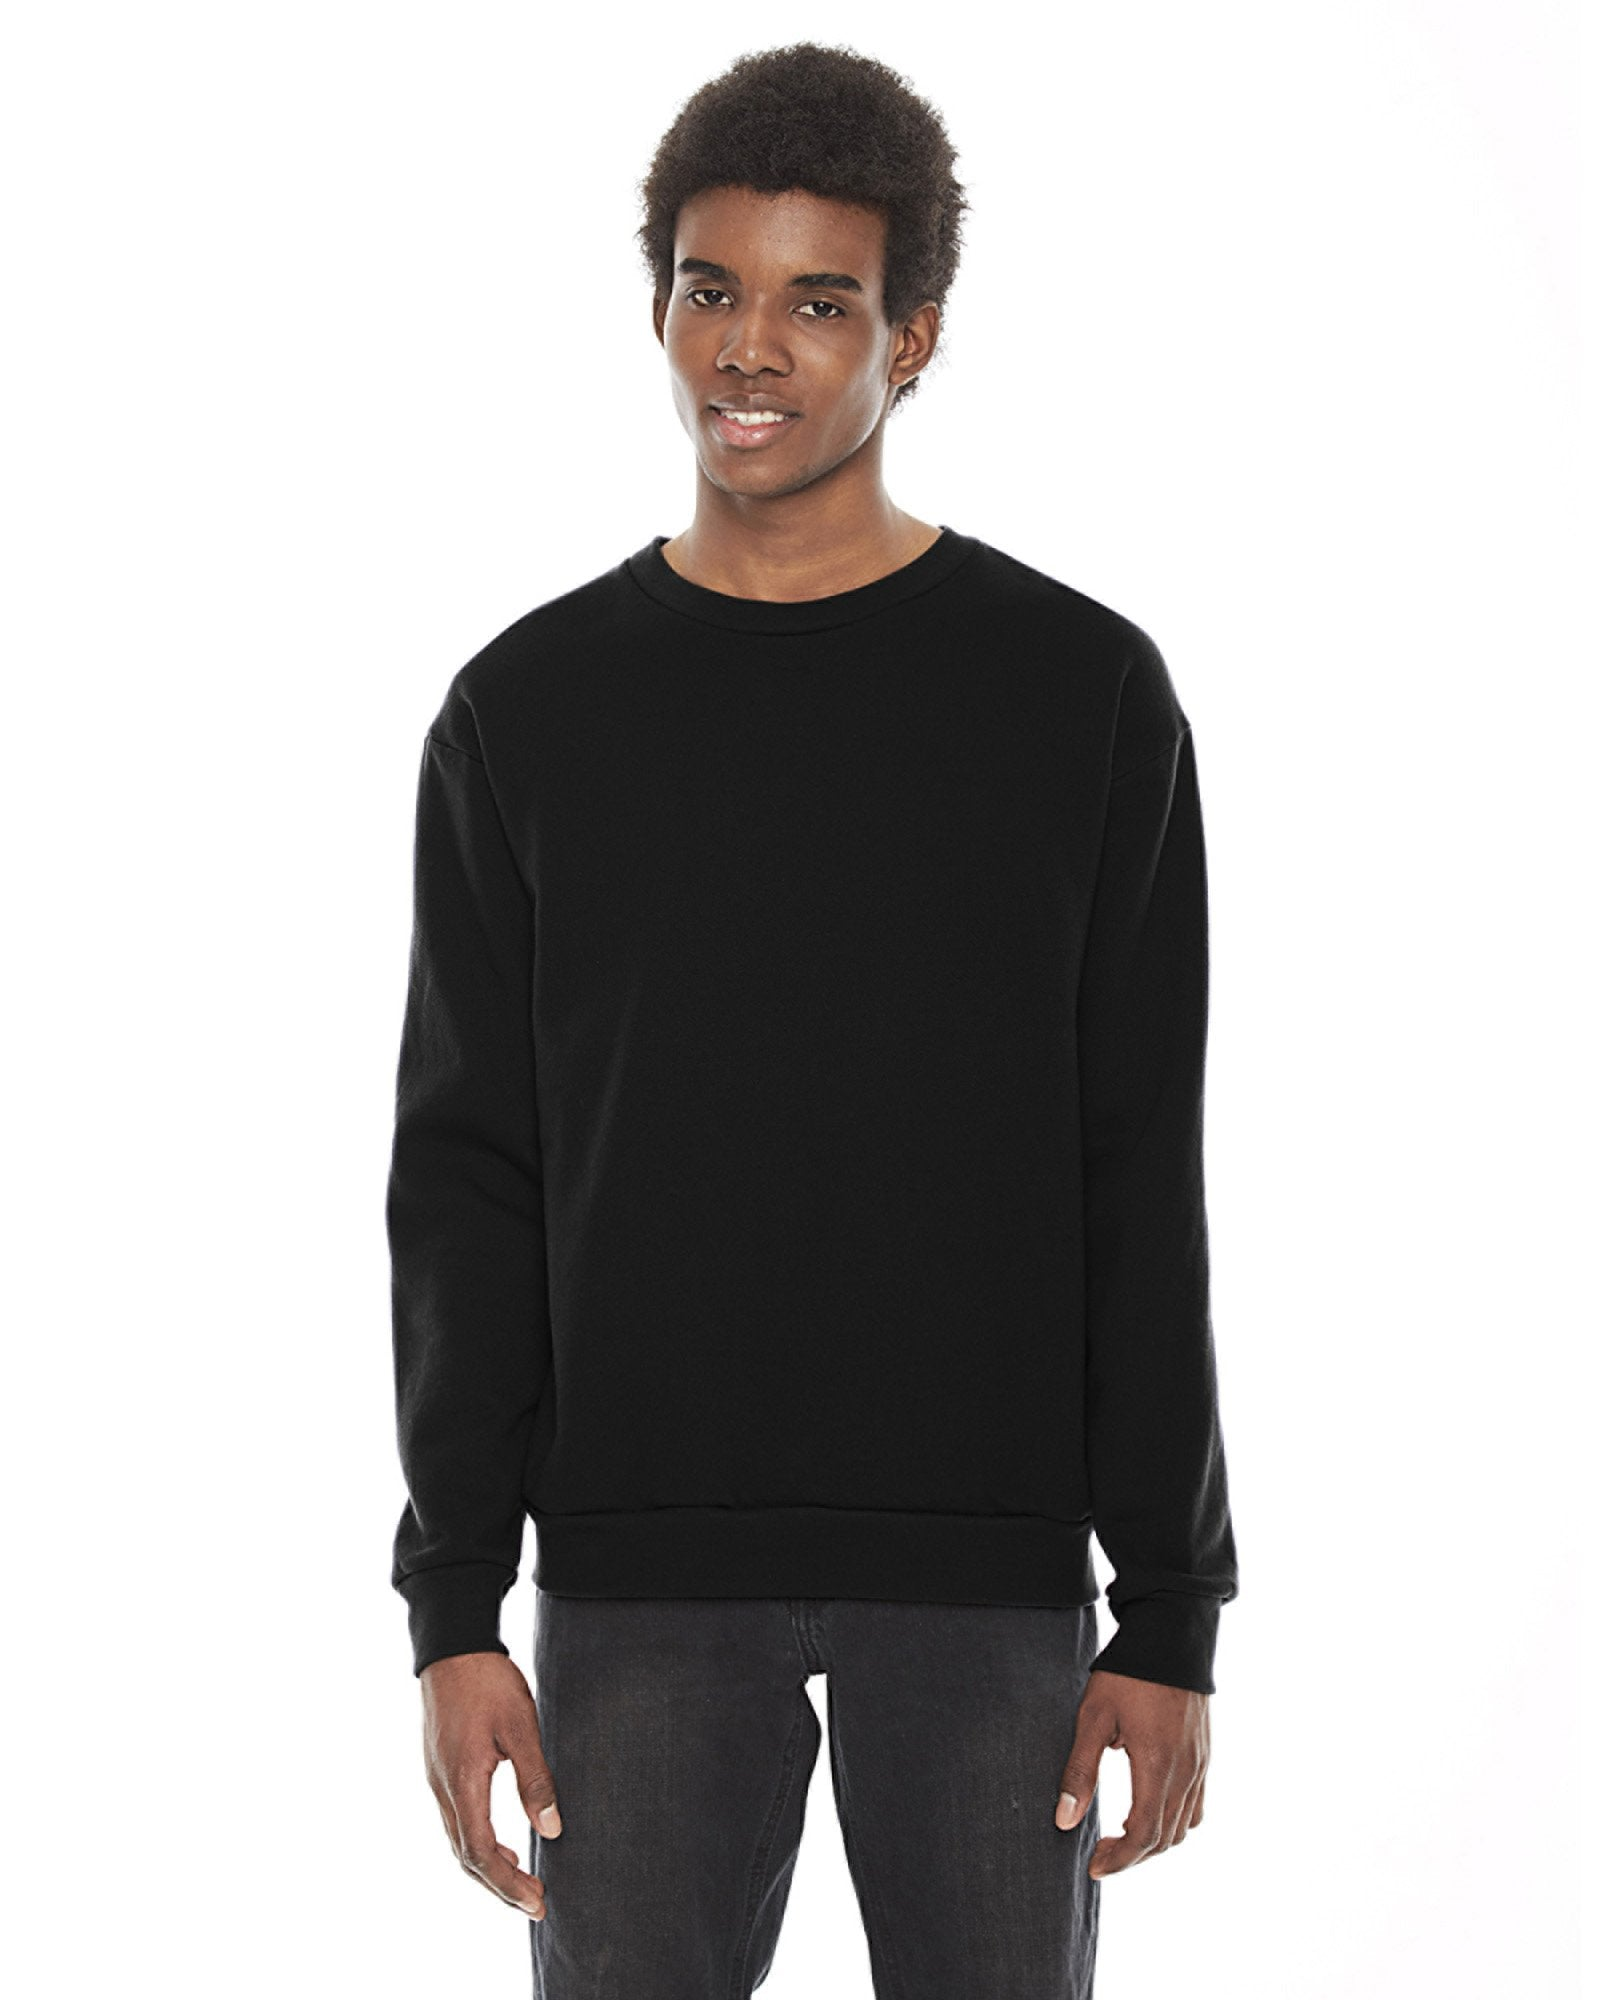 American Apparel - F496 - Unisex Flex Fleece Drop Shoulder Pullover Crewneck